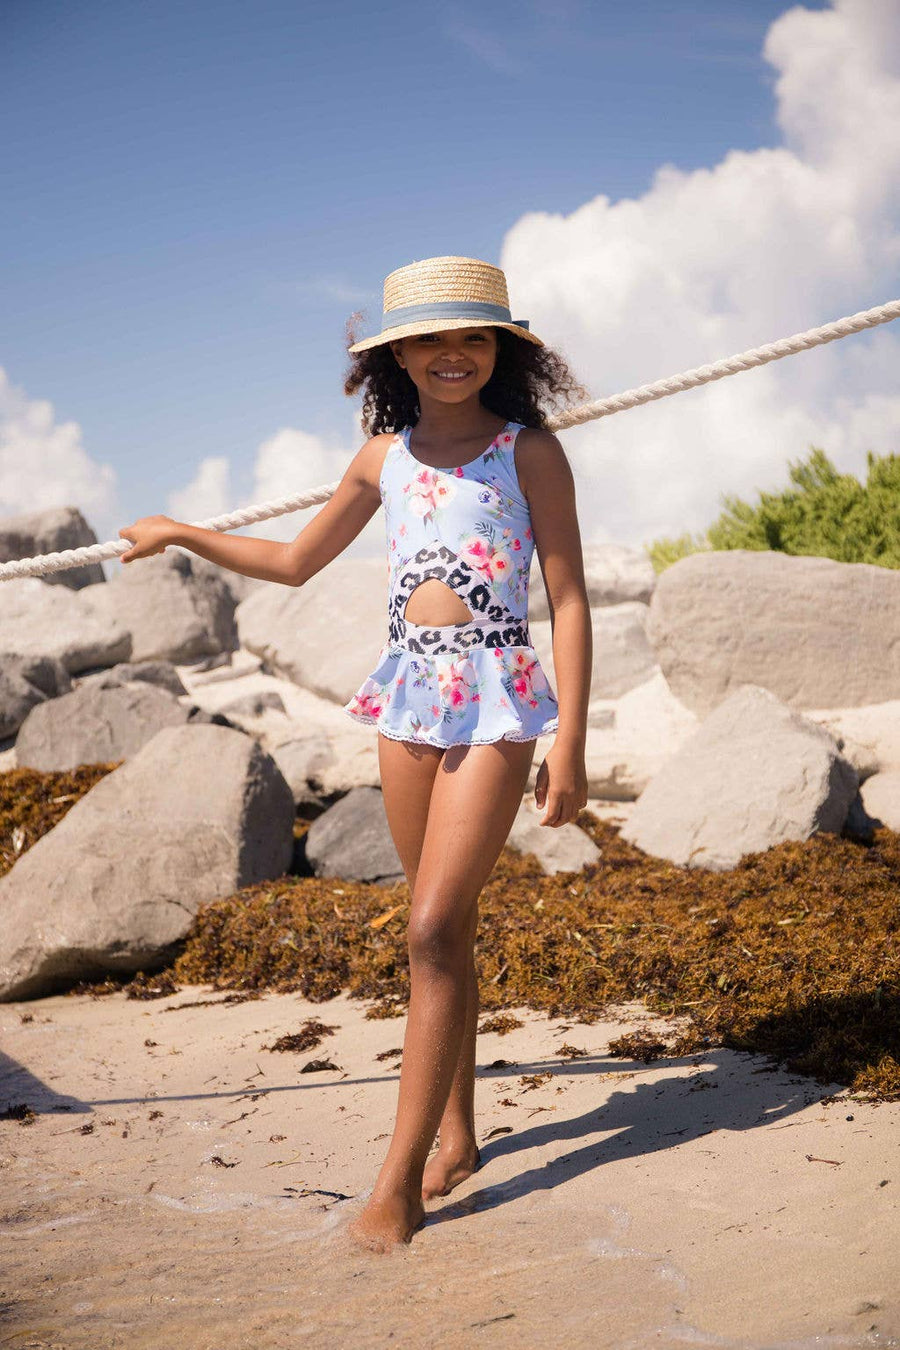 Blueberry Bay Dream Weaver Boater Style Sun Hat